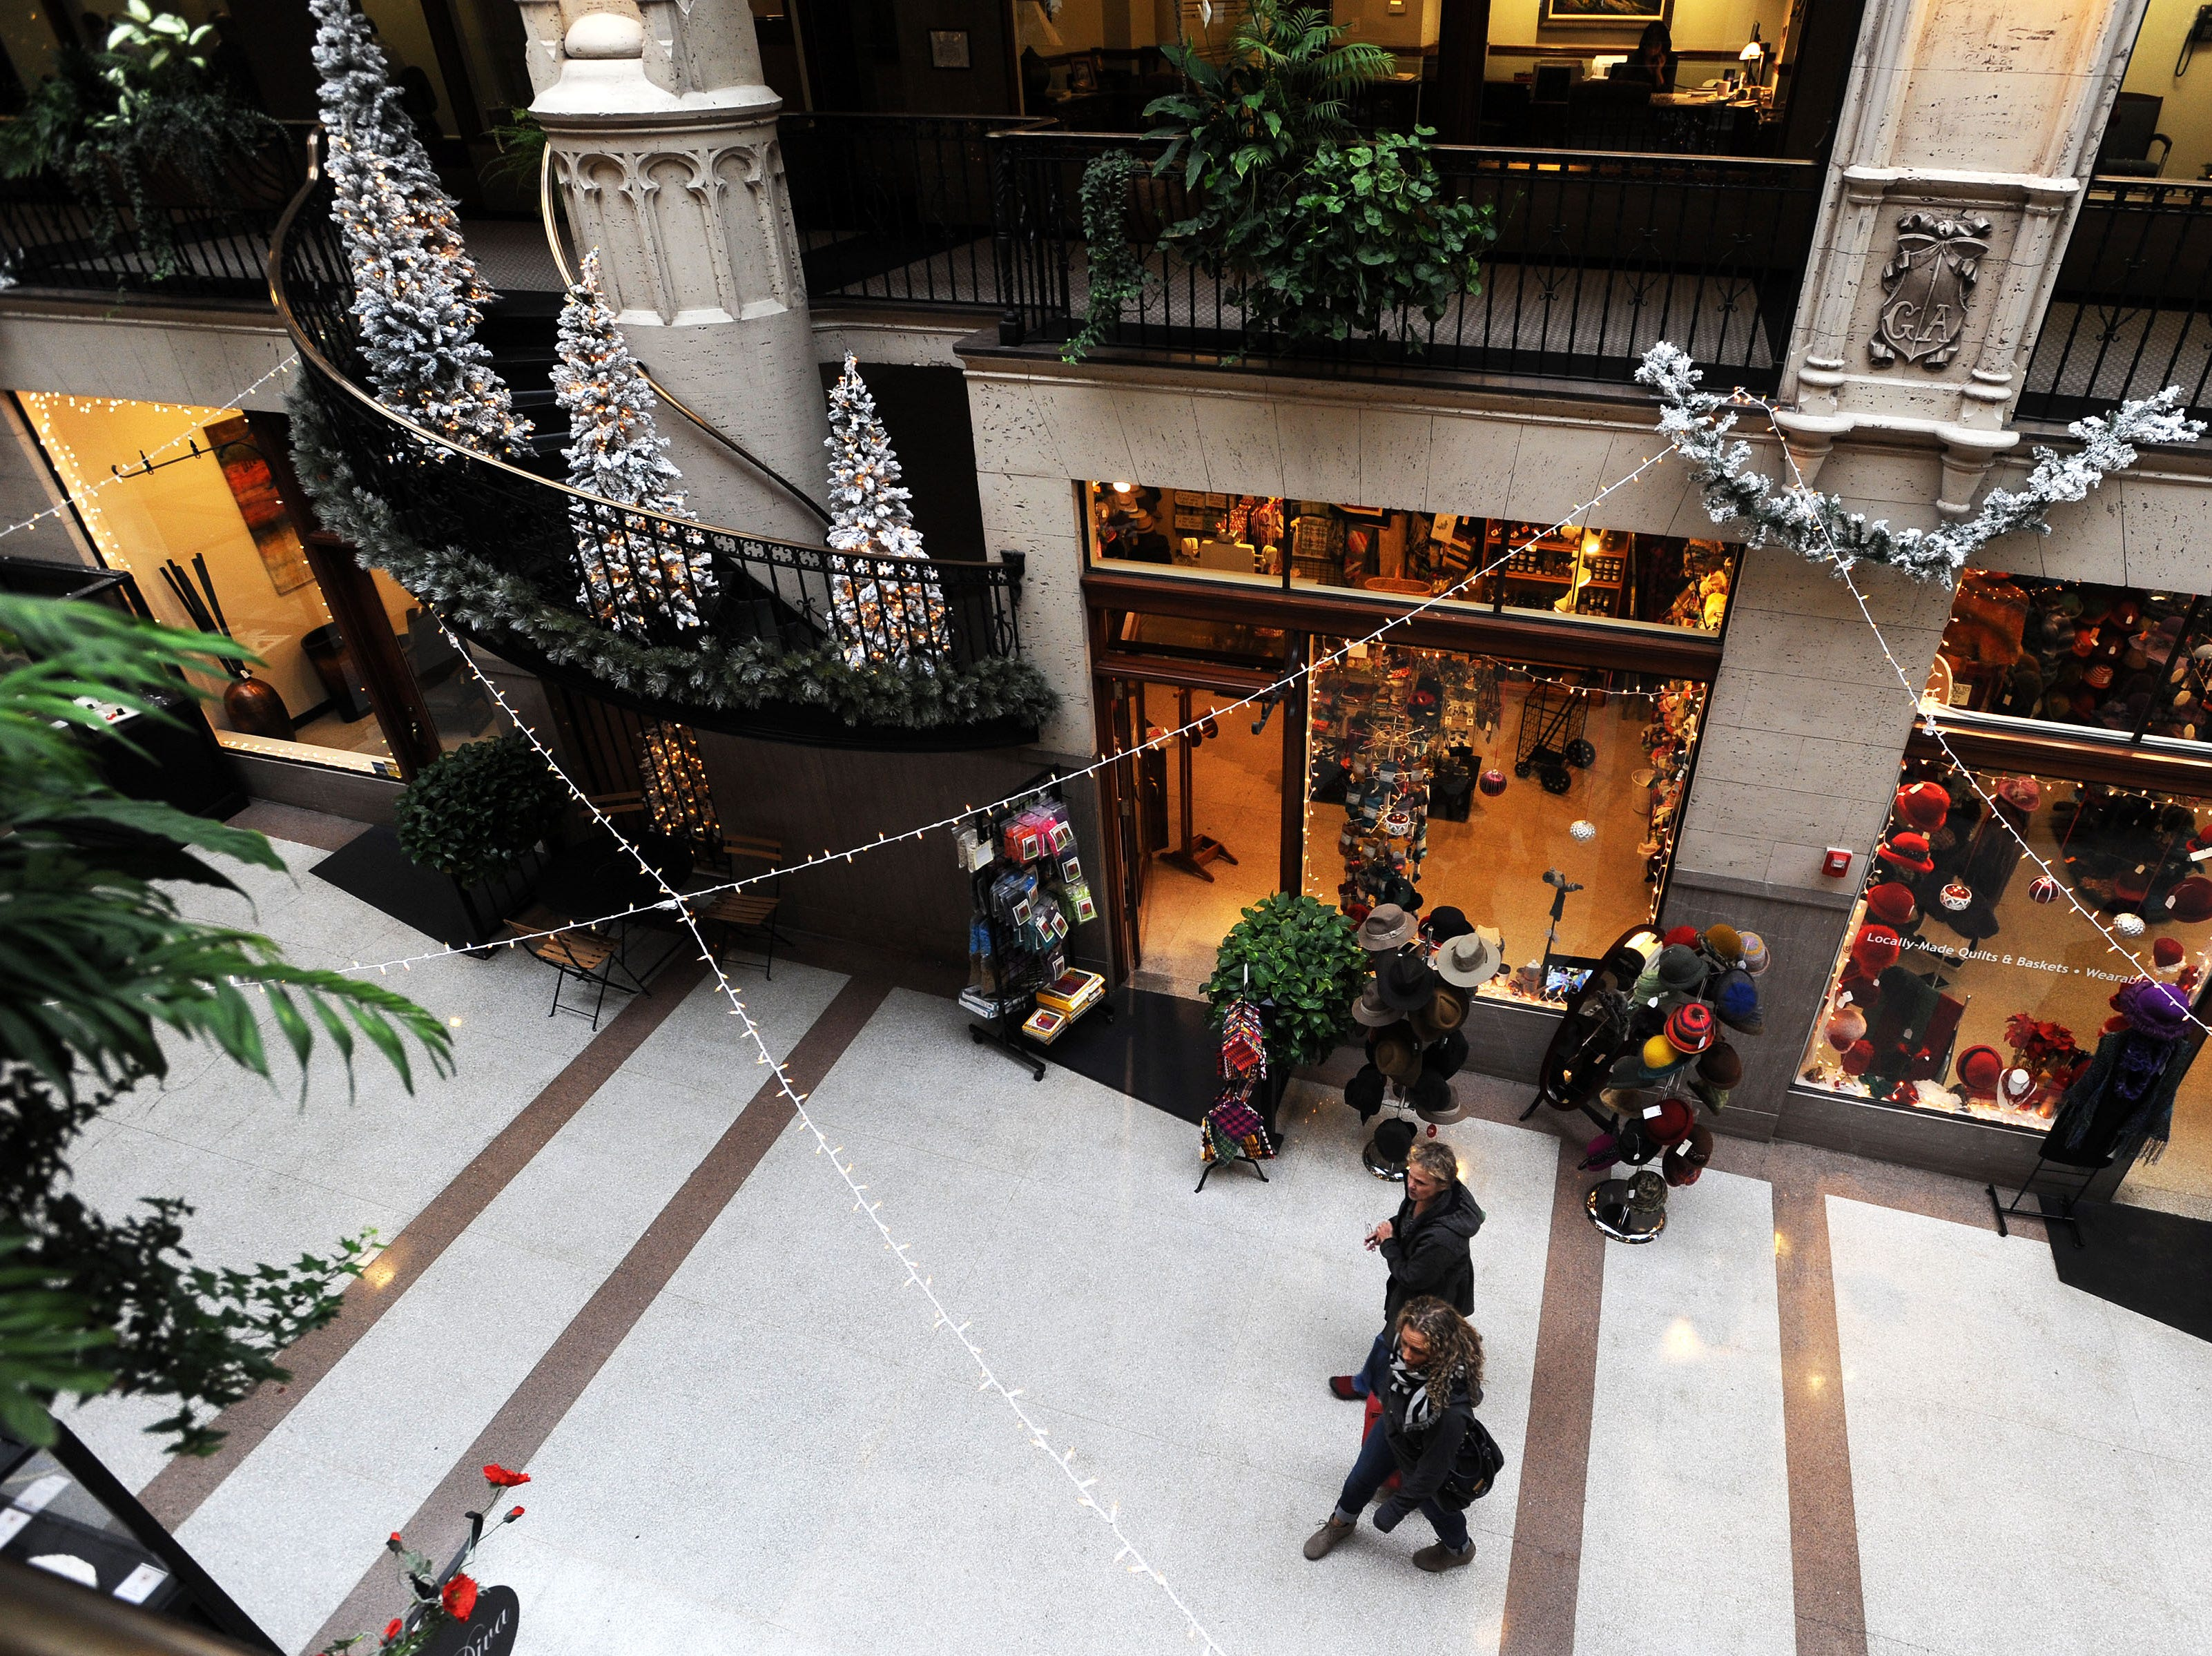 The Grove Arcade attracts a crowd of tourists during the holiday season.